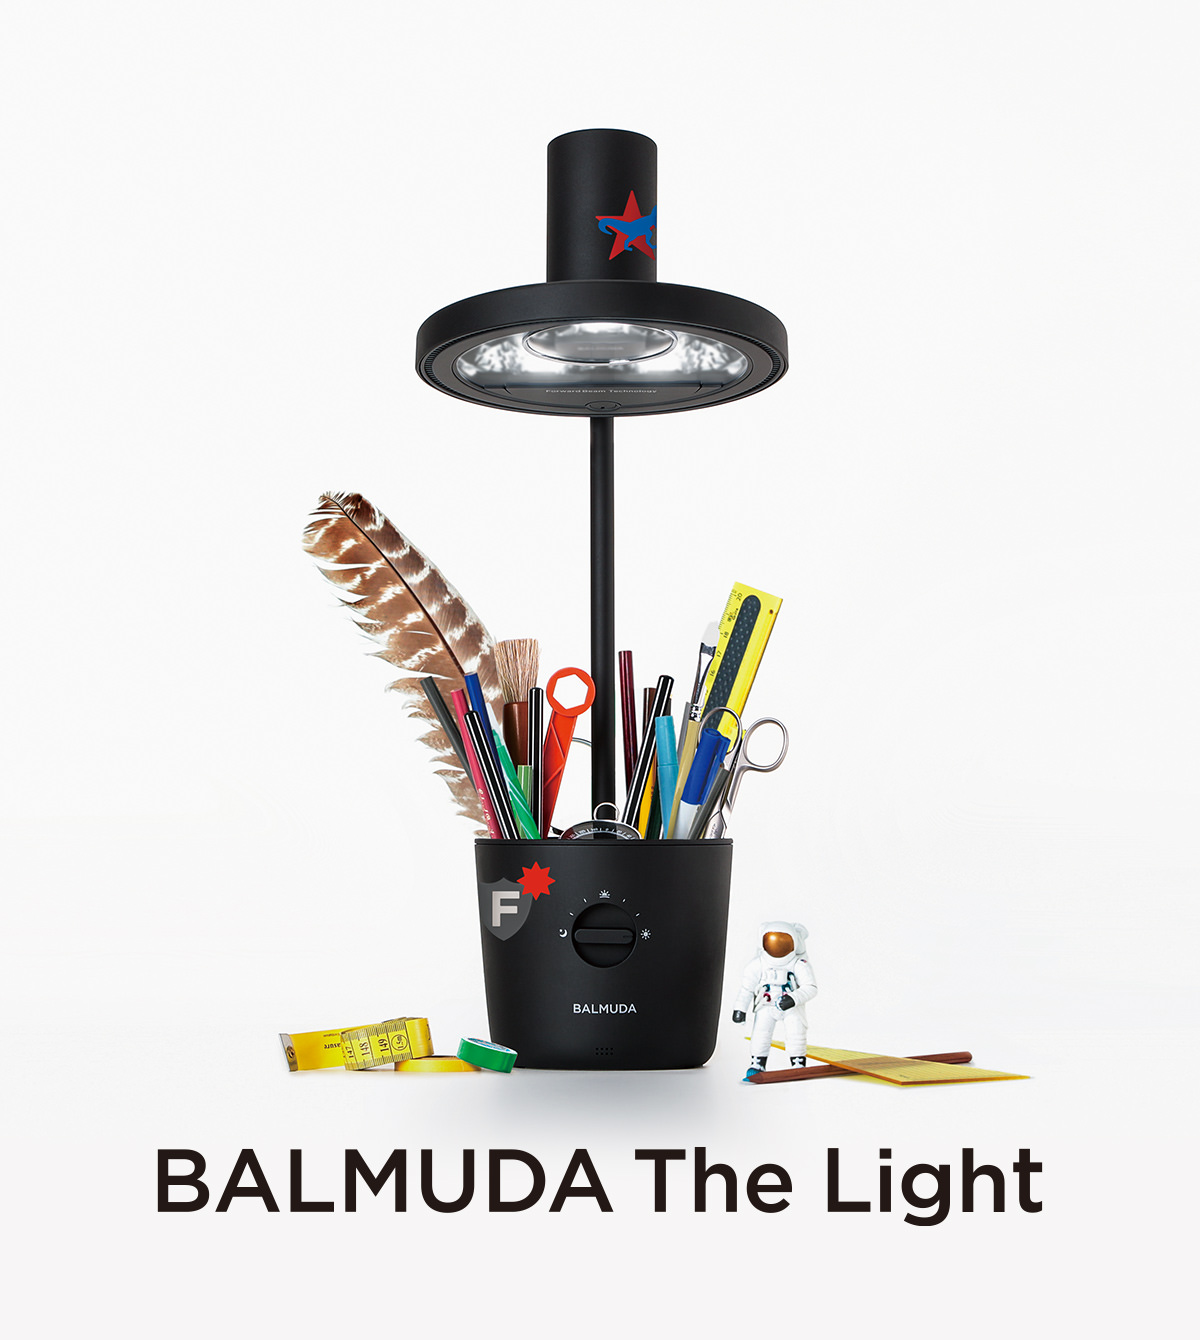 balmuda-the-light-1